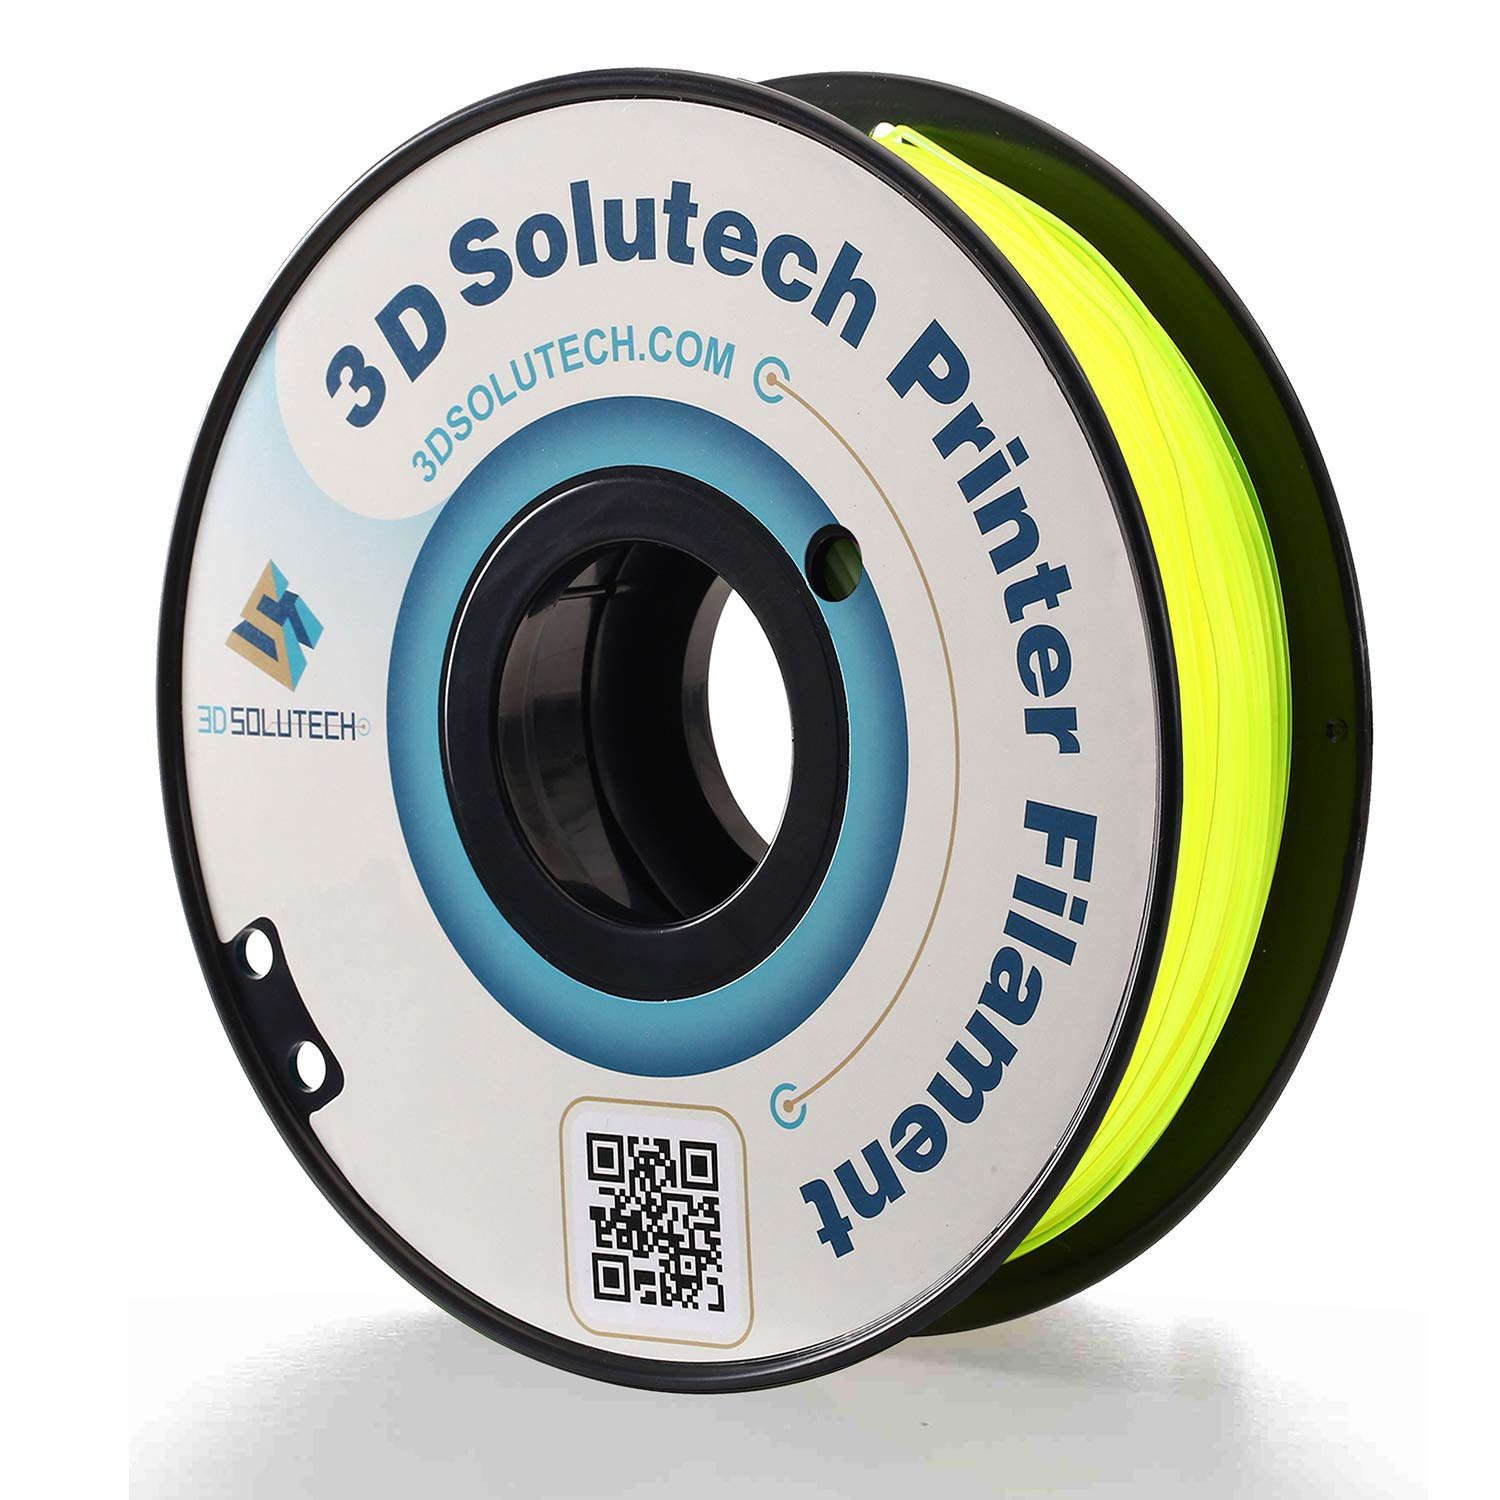 3D Solutech See Through Yellow 3D Printer PLA Filament 1.75MM Filament, Dimensional Accuracy +/- 0.03 mm, 2.2 LBS (1.0KG) - 3DSPLA175STYLW